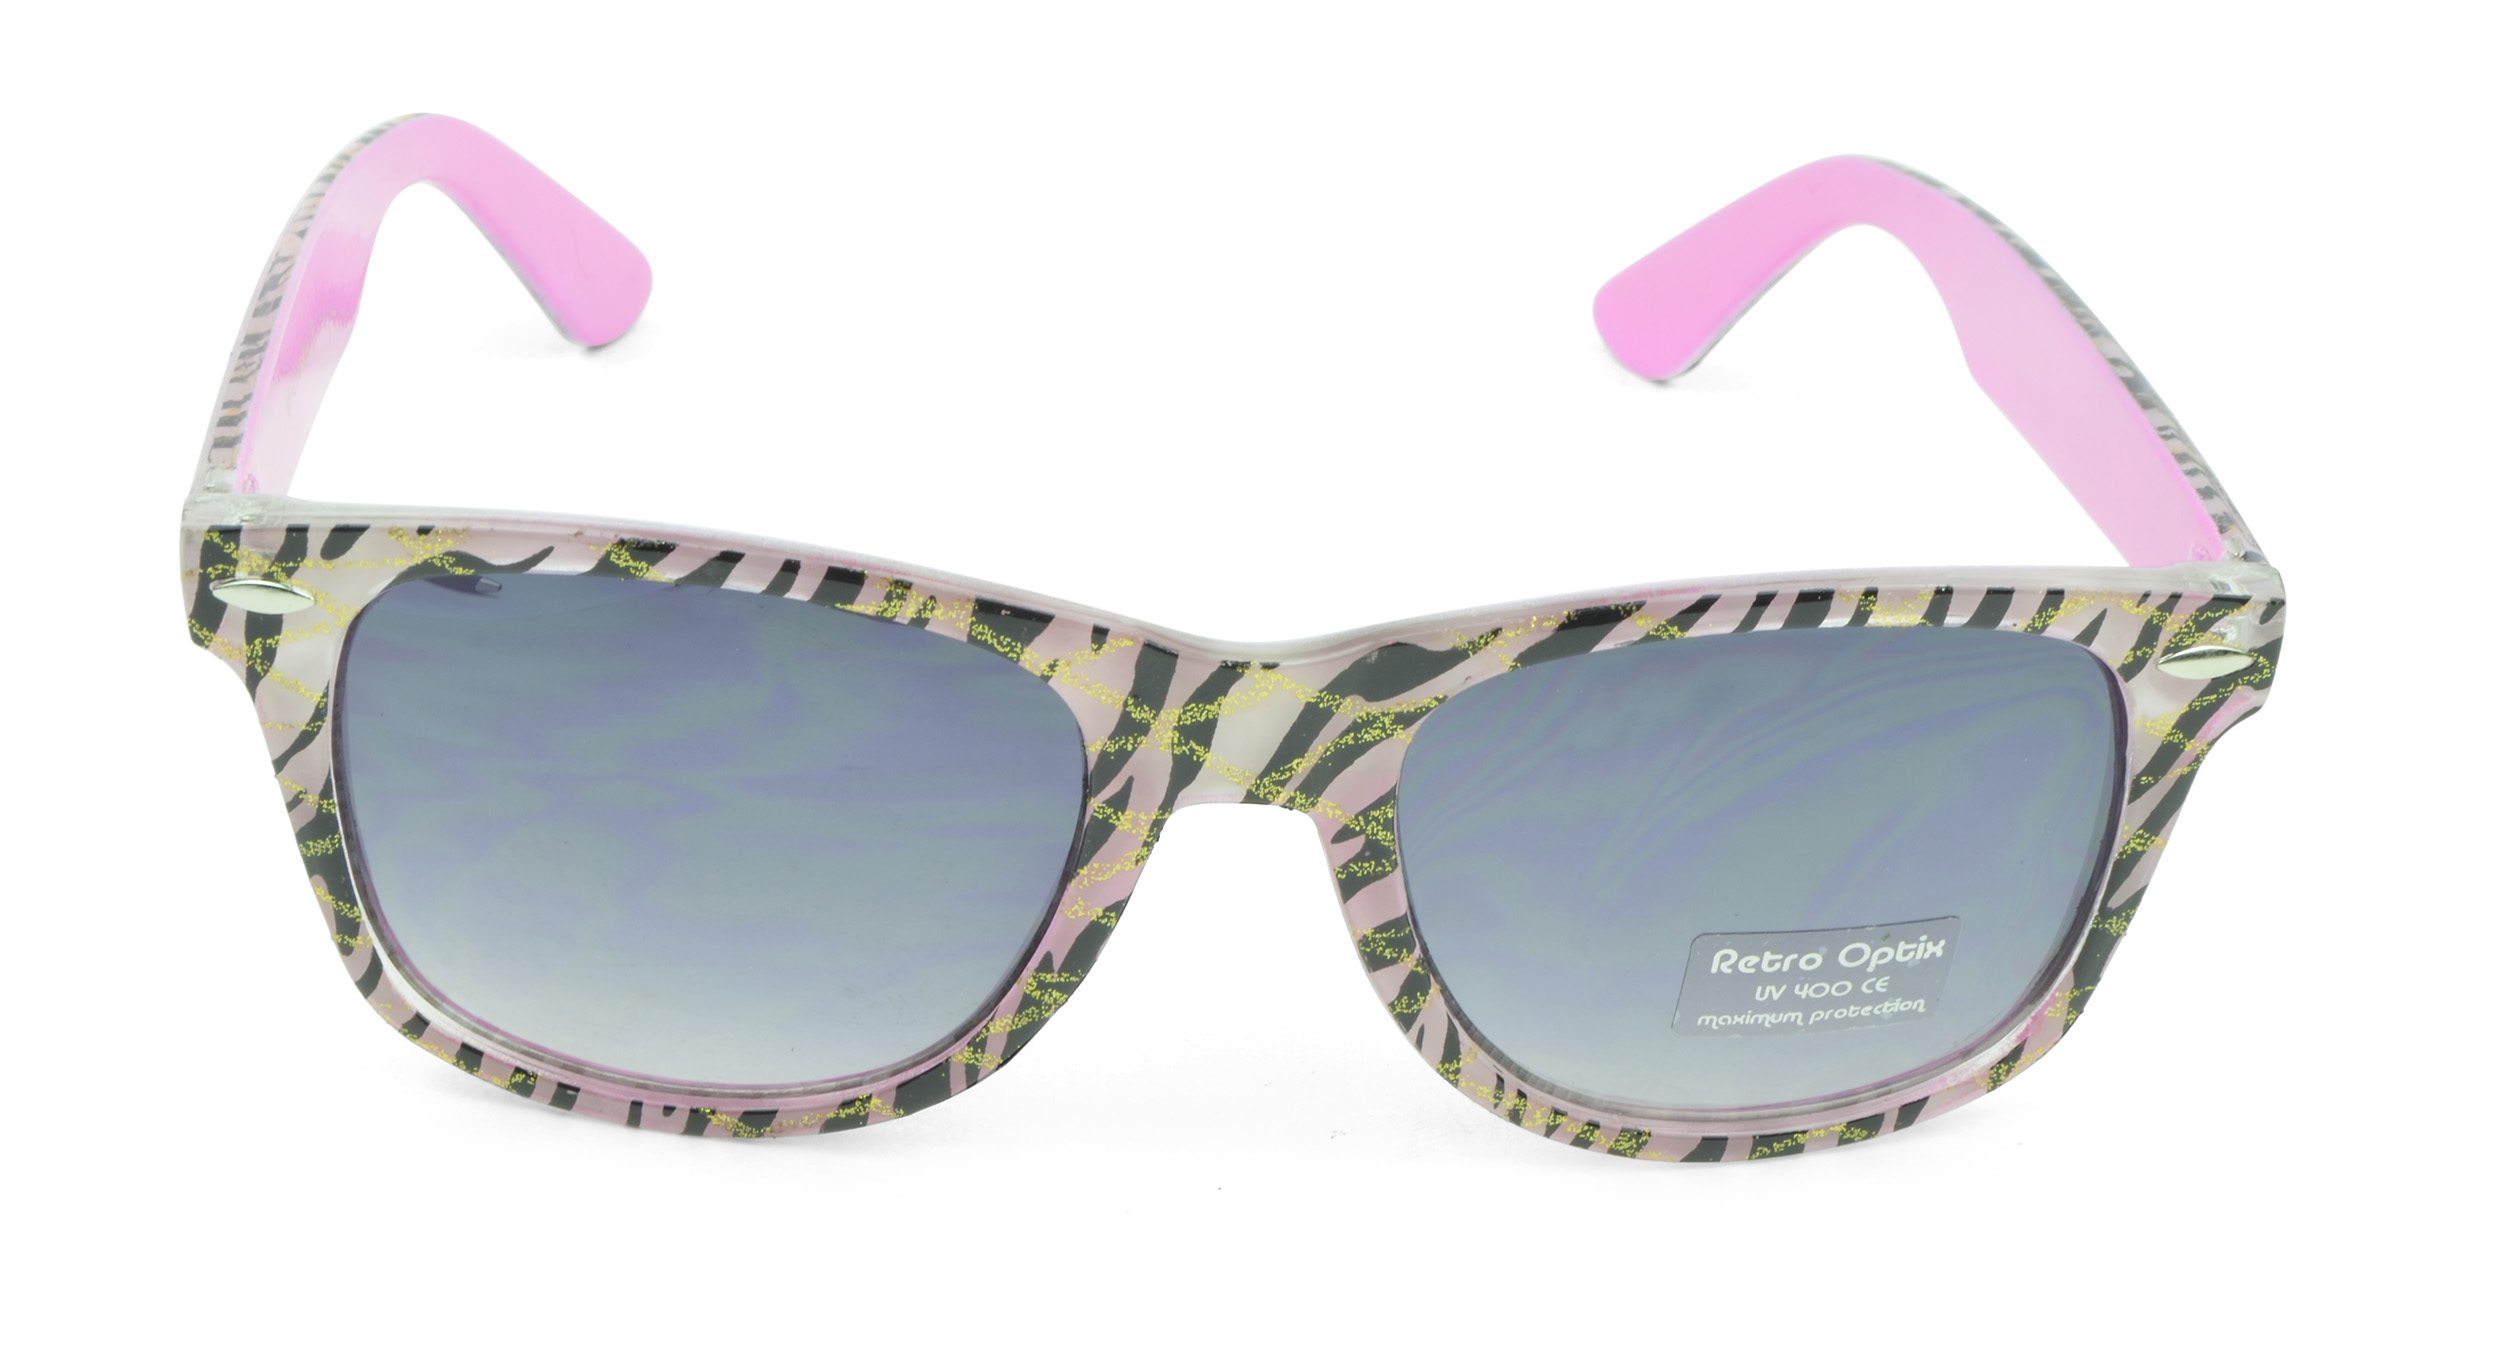 Belle Donne - Wayfarer Style Sunglasses Trendy Cheap Sunglasses High Quality Animal Print - Pink